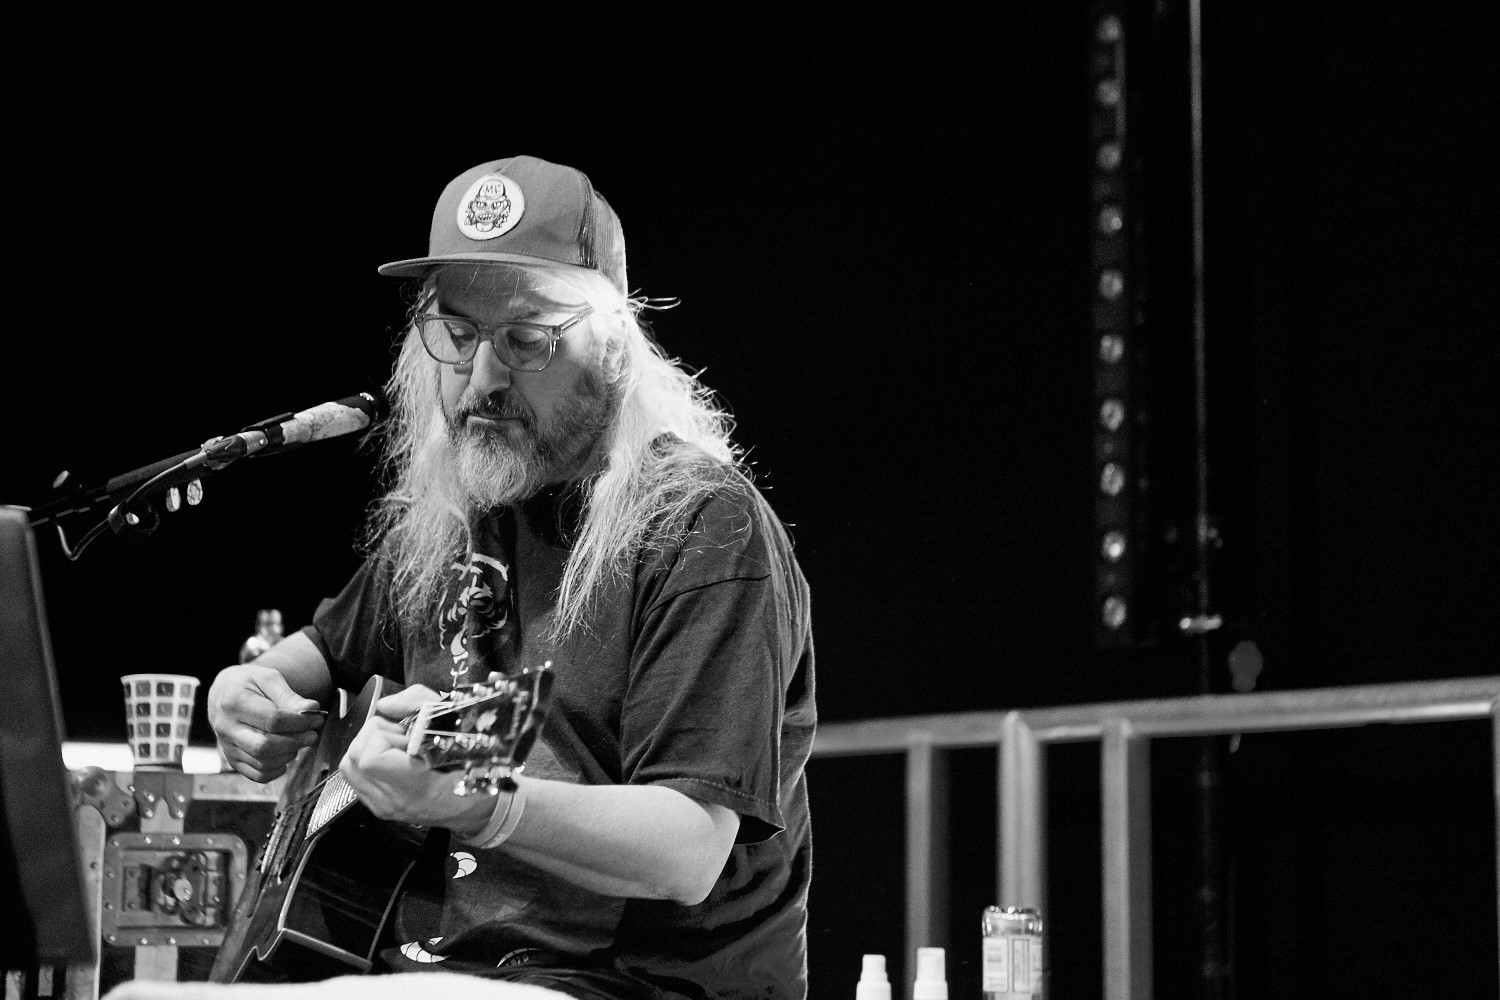 J MASCIS LIVE AT THE JUNCTION 2, CAMBRIDGE.